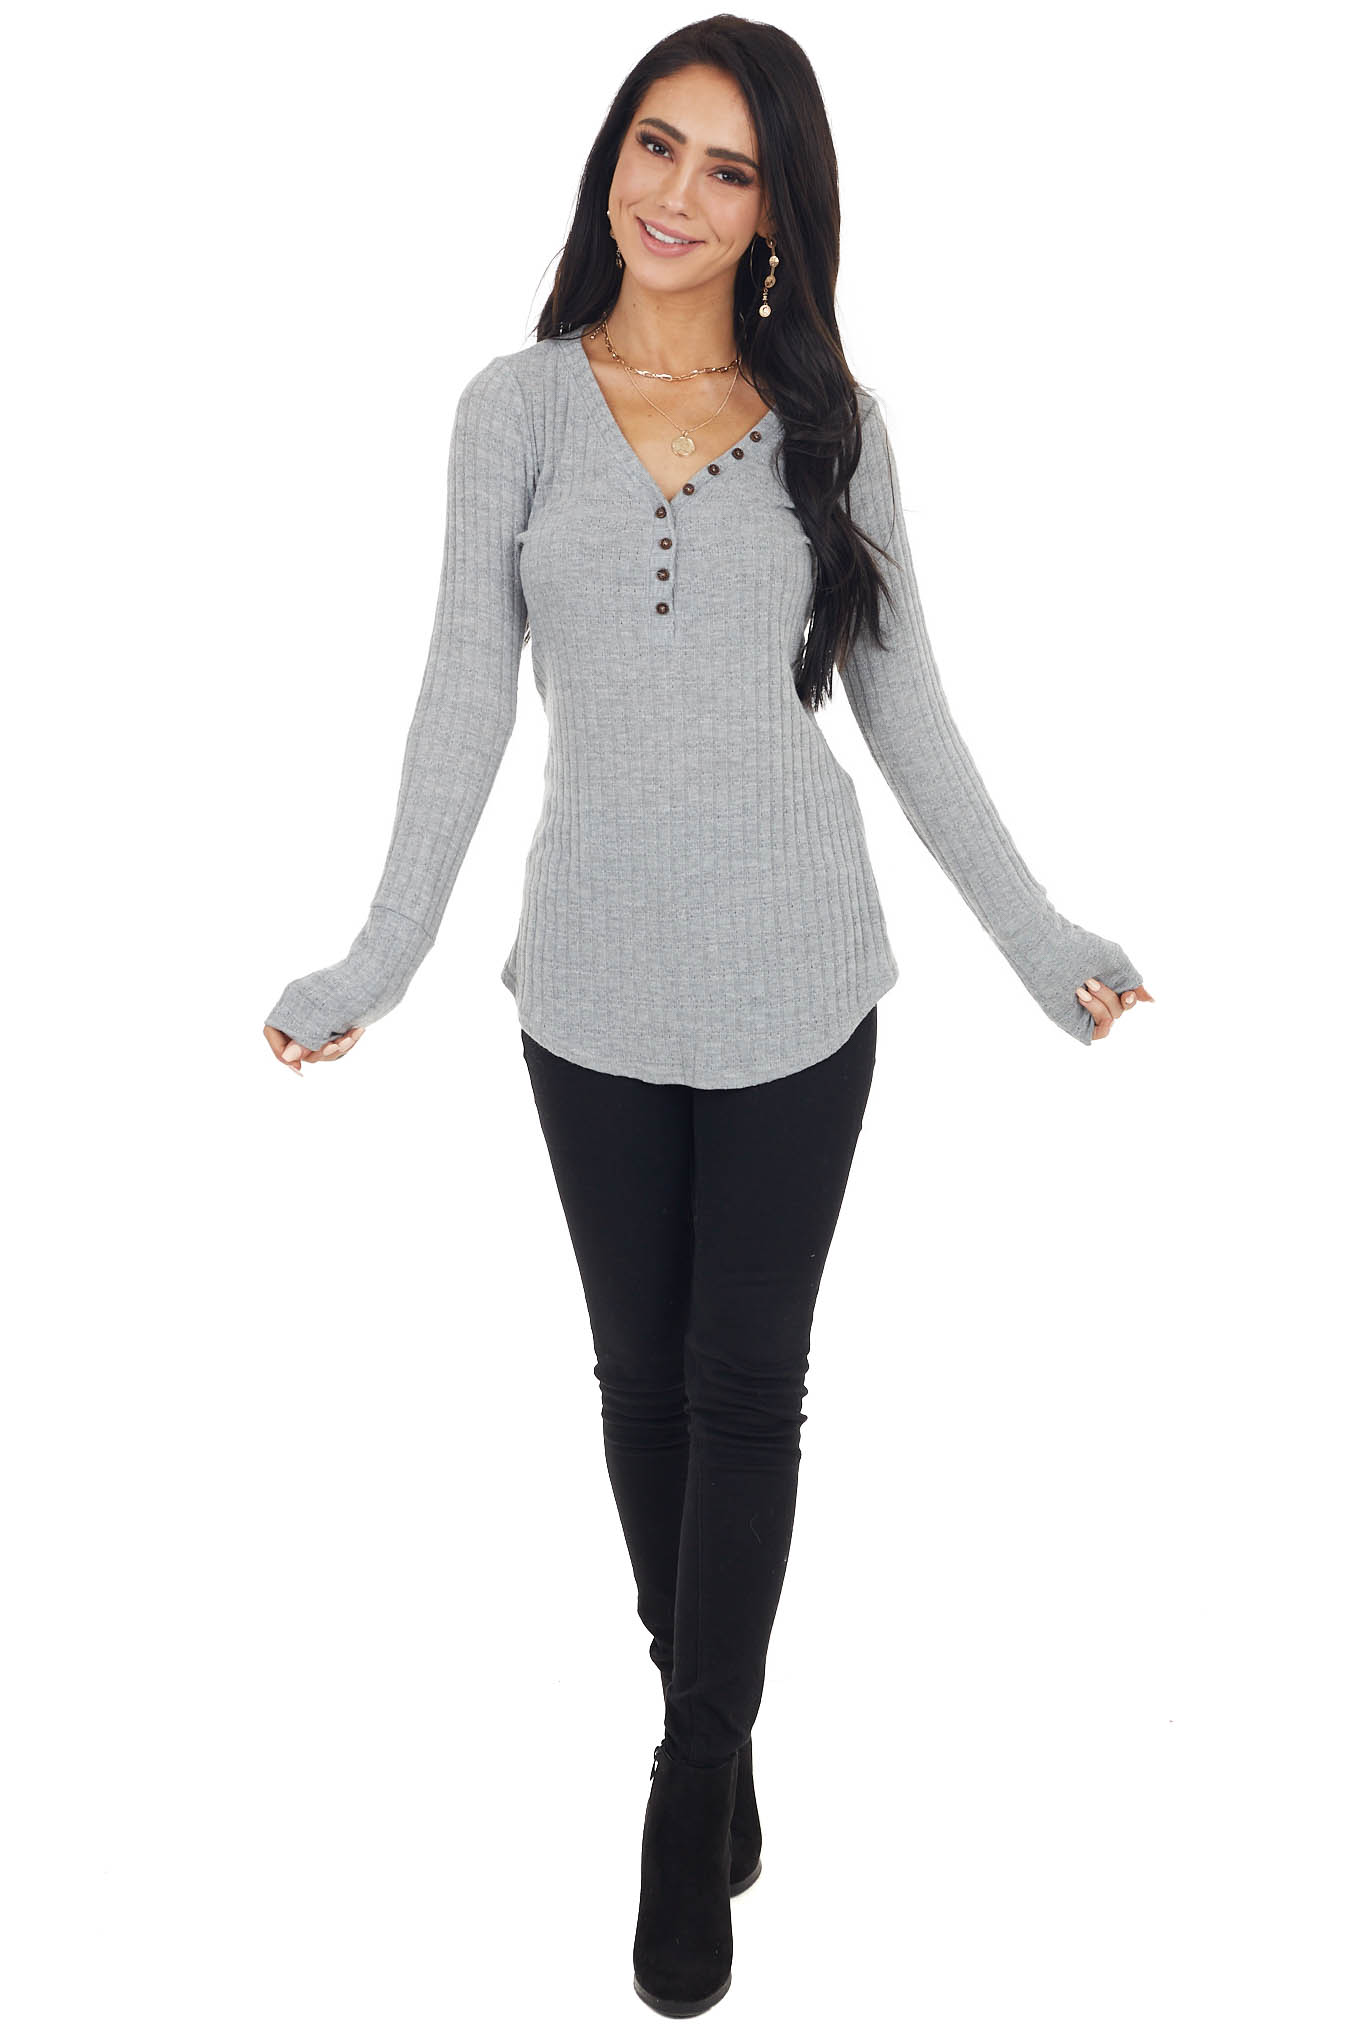 Heather Grey Long Sleeve Ribbed Knit Top with Button Detail